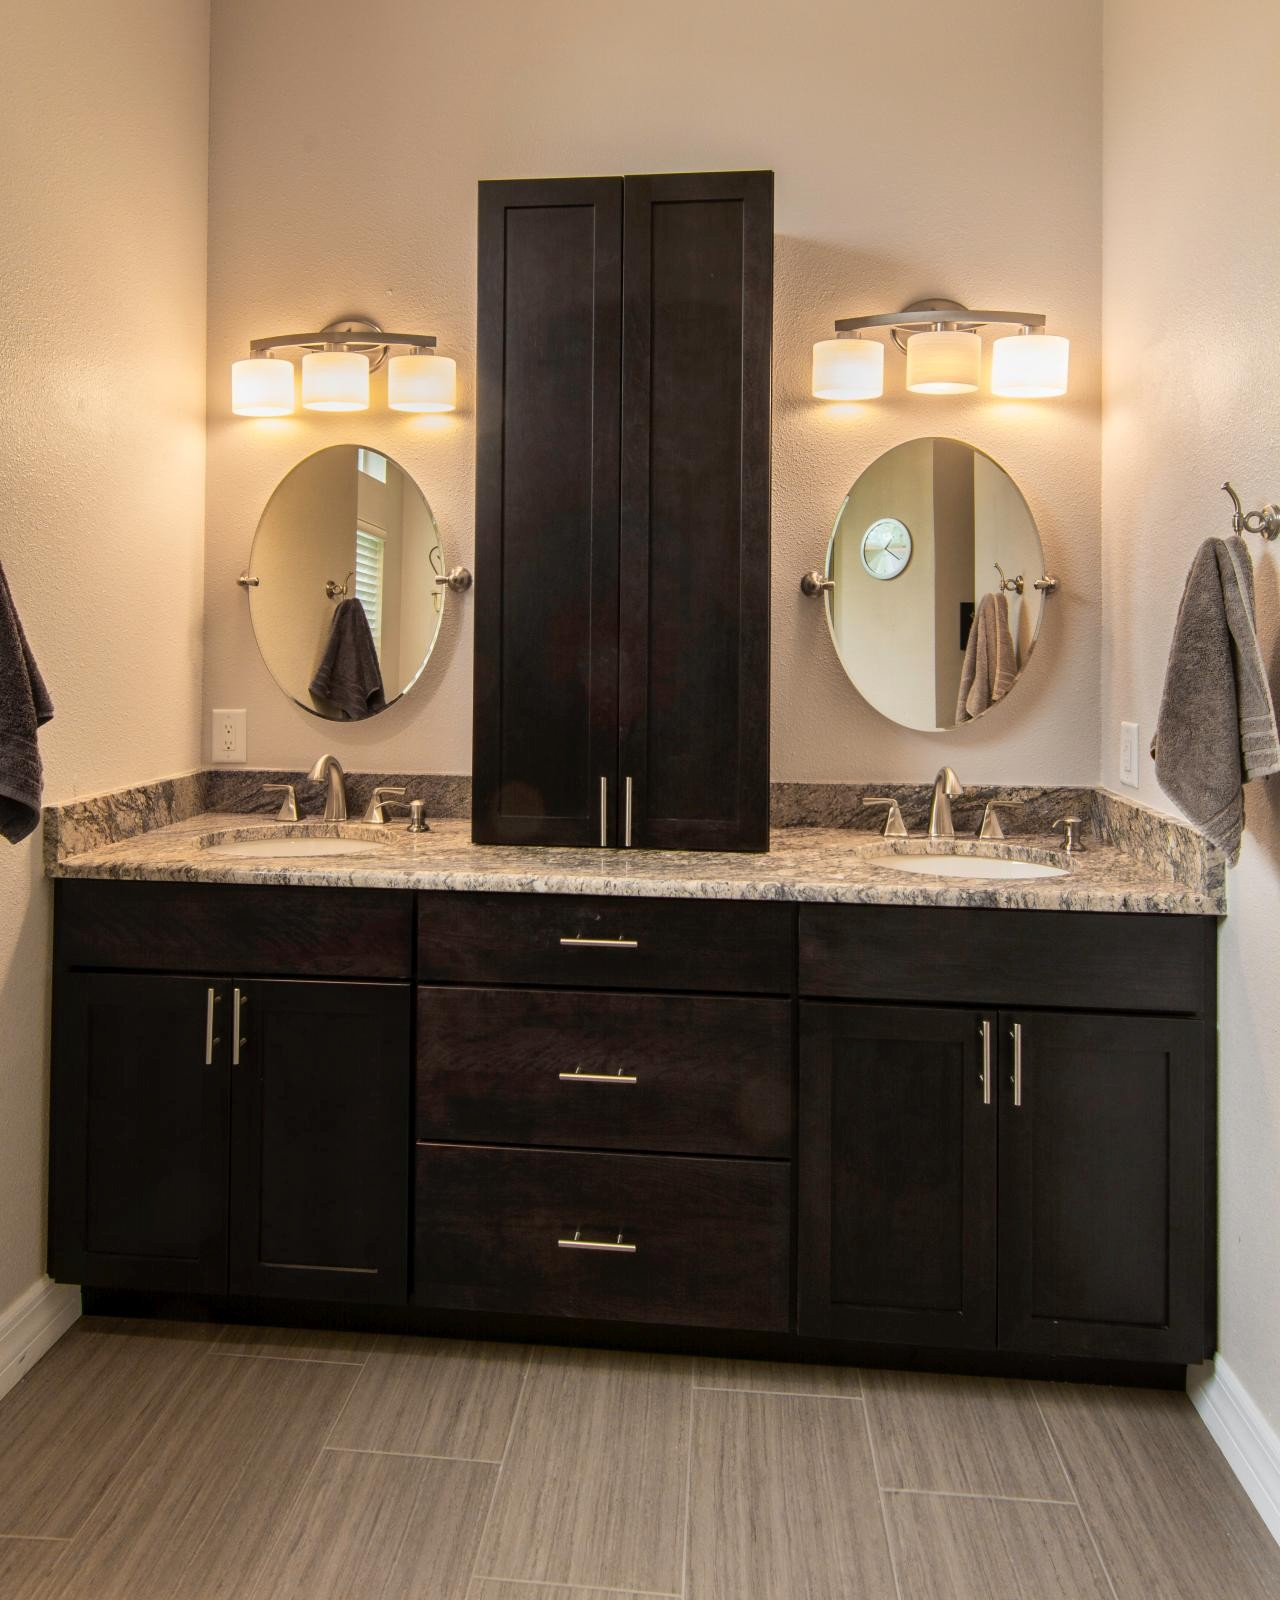 Bathroom Double Vanities with tops Beautiful Bathroom Double Vanities with tops Ideas